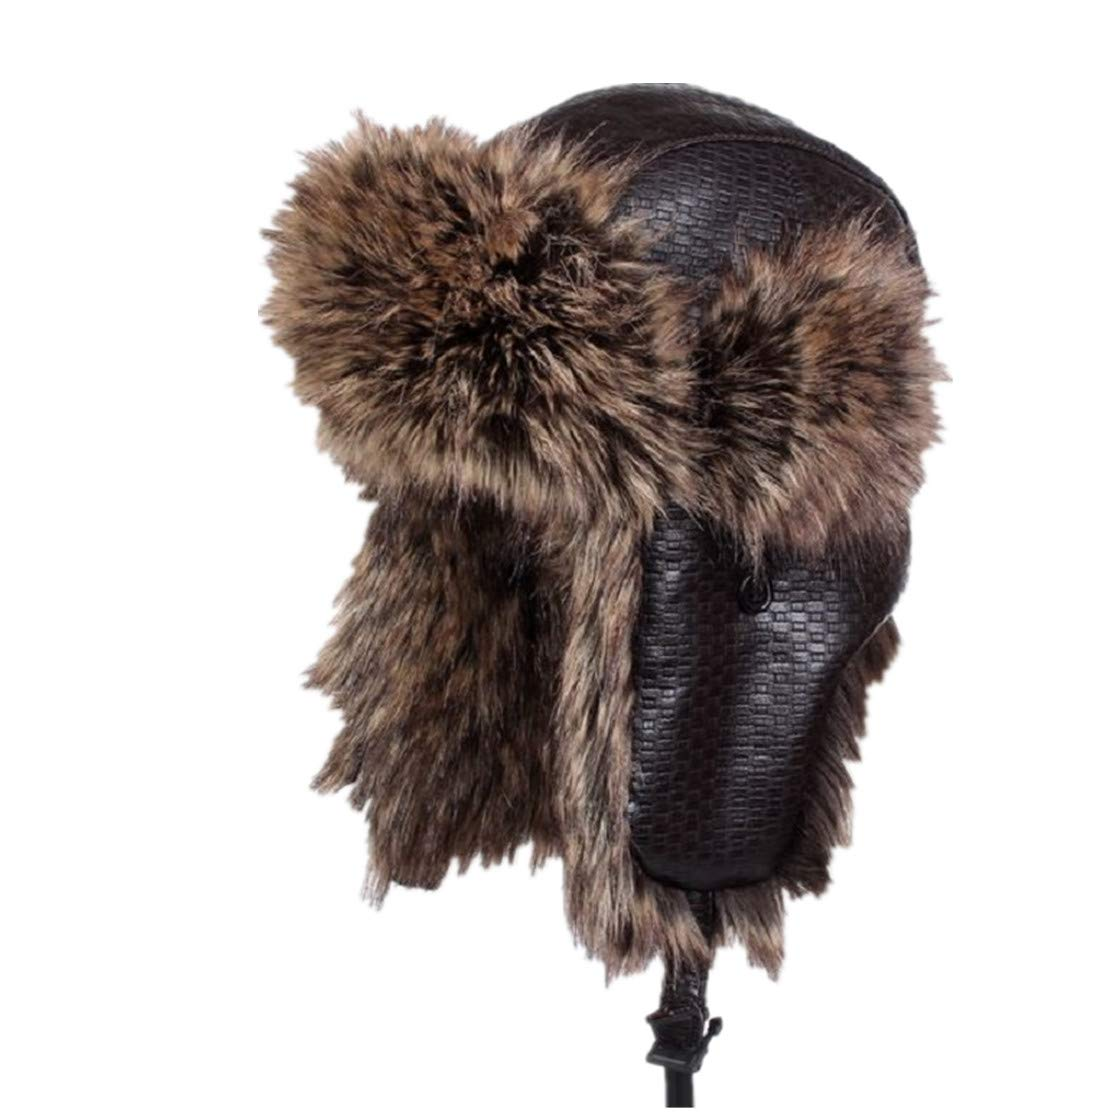 Unisex Winter Solid Color PU Bomber Hat Waterproof Earflap Thicken Thermal Cap